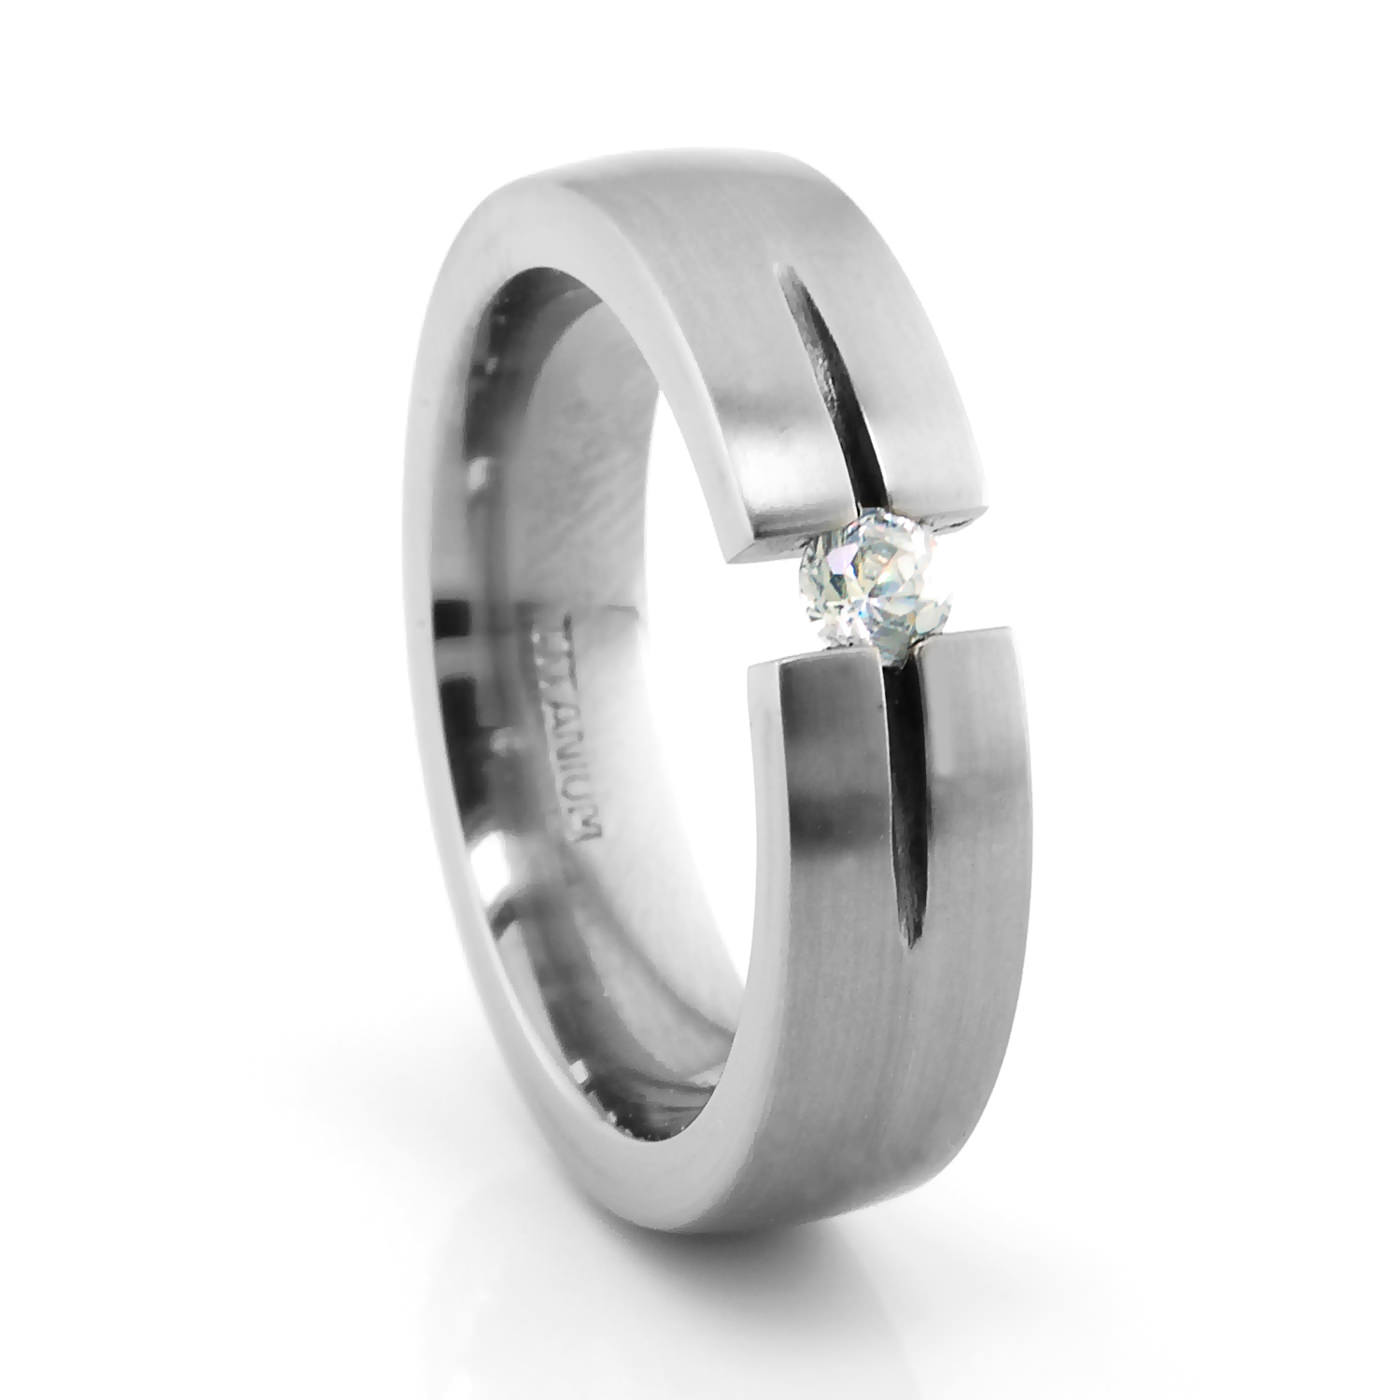 inside rings view ring of full stylish tungsten simple wedding bands mens attachment black gallery